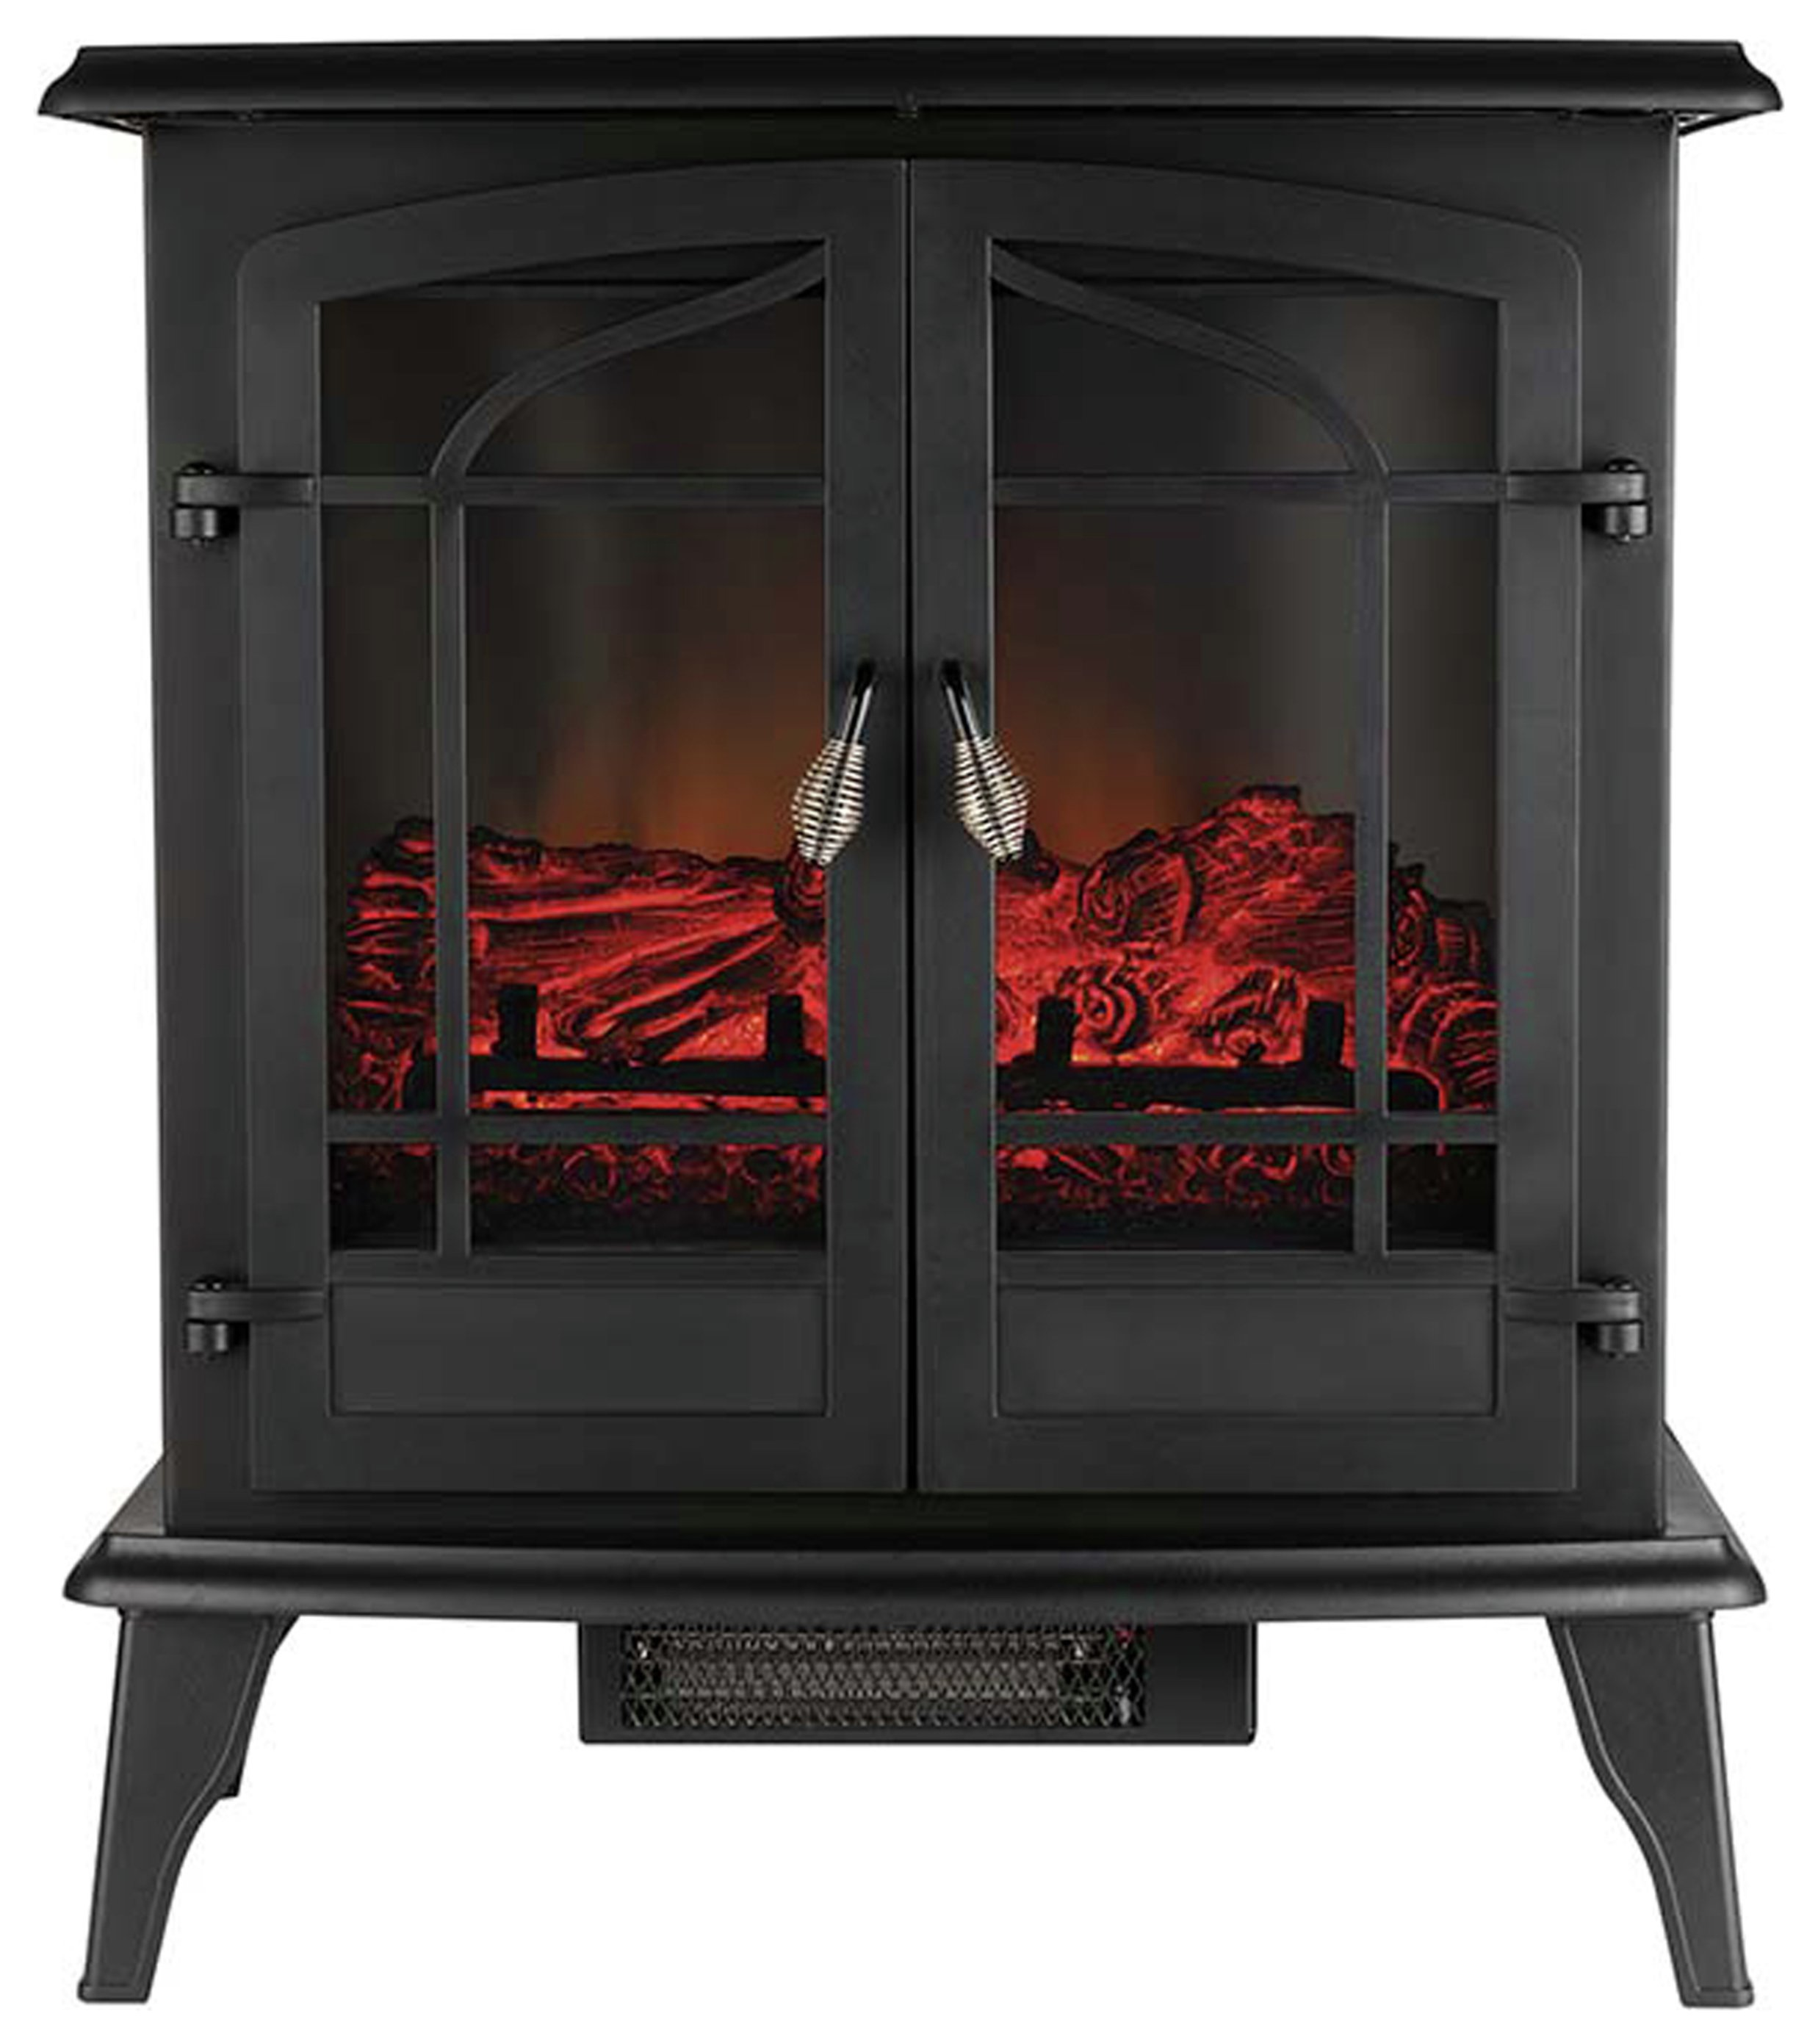 Image of Beldray Alcudia Glass Sided Electric Stove